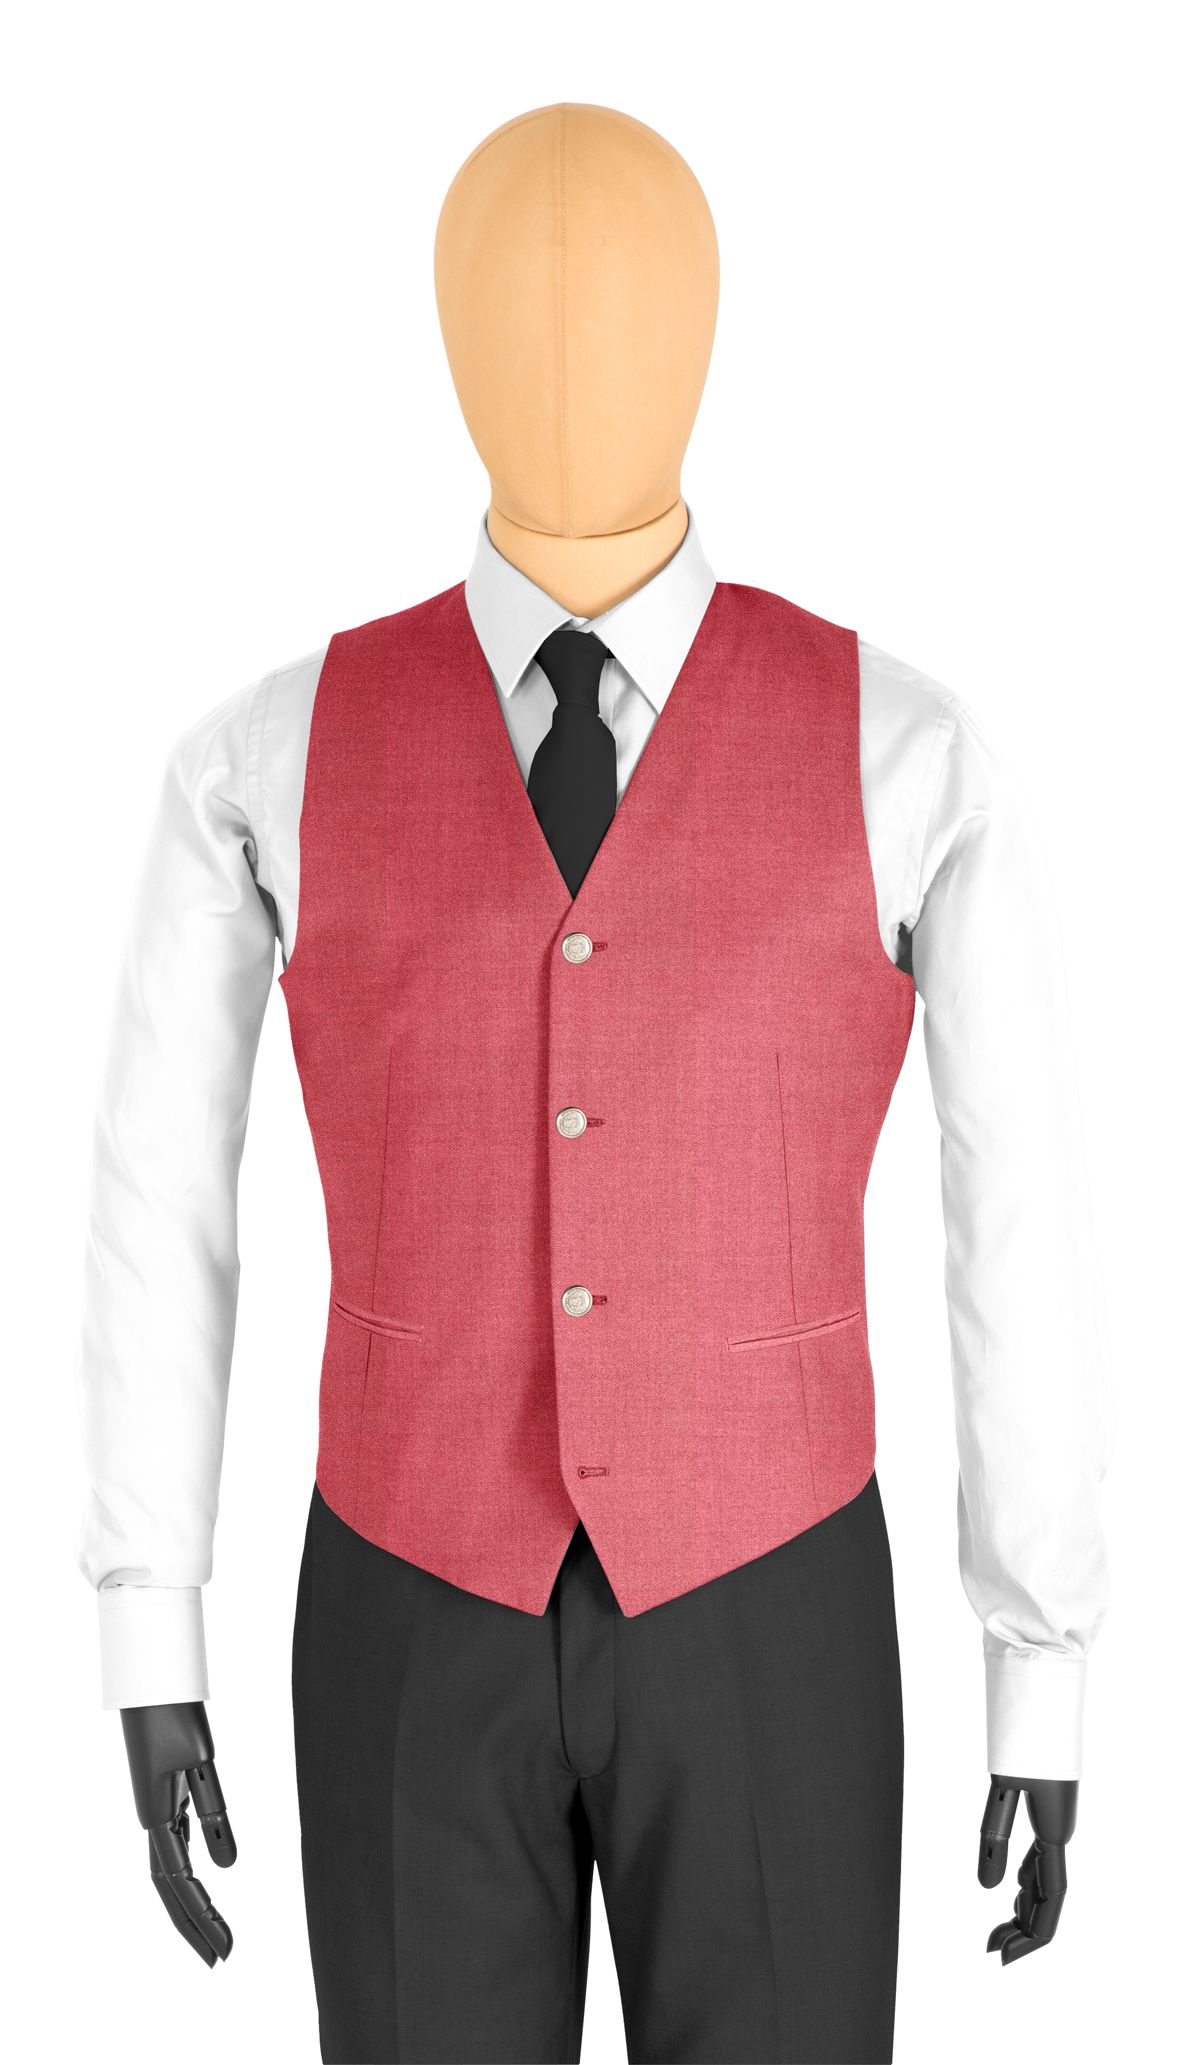 Gilet coupe 4 boutons rouge